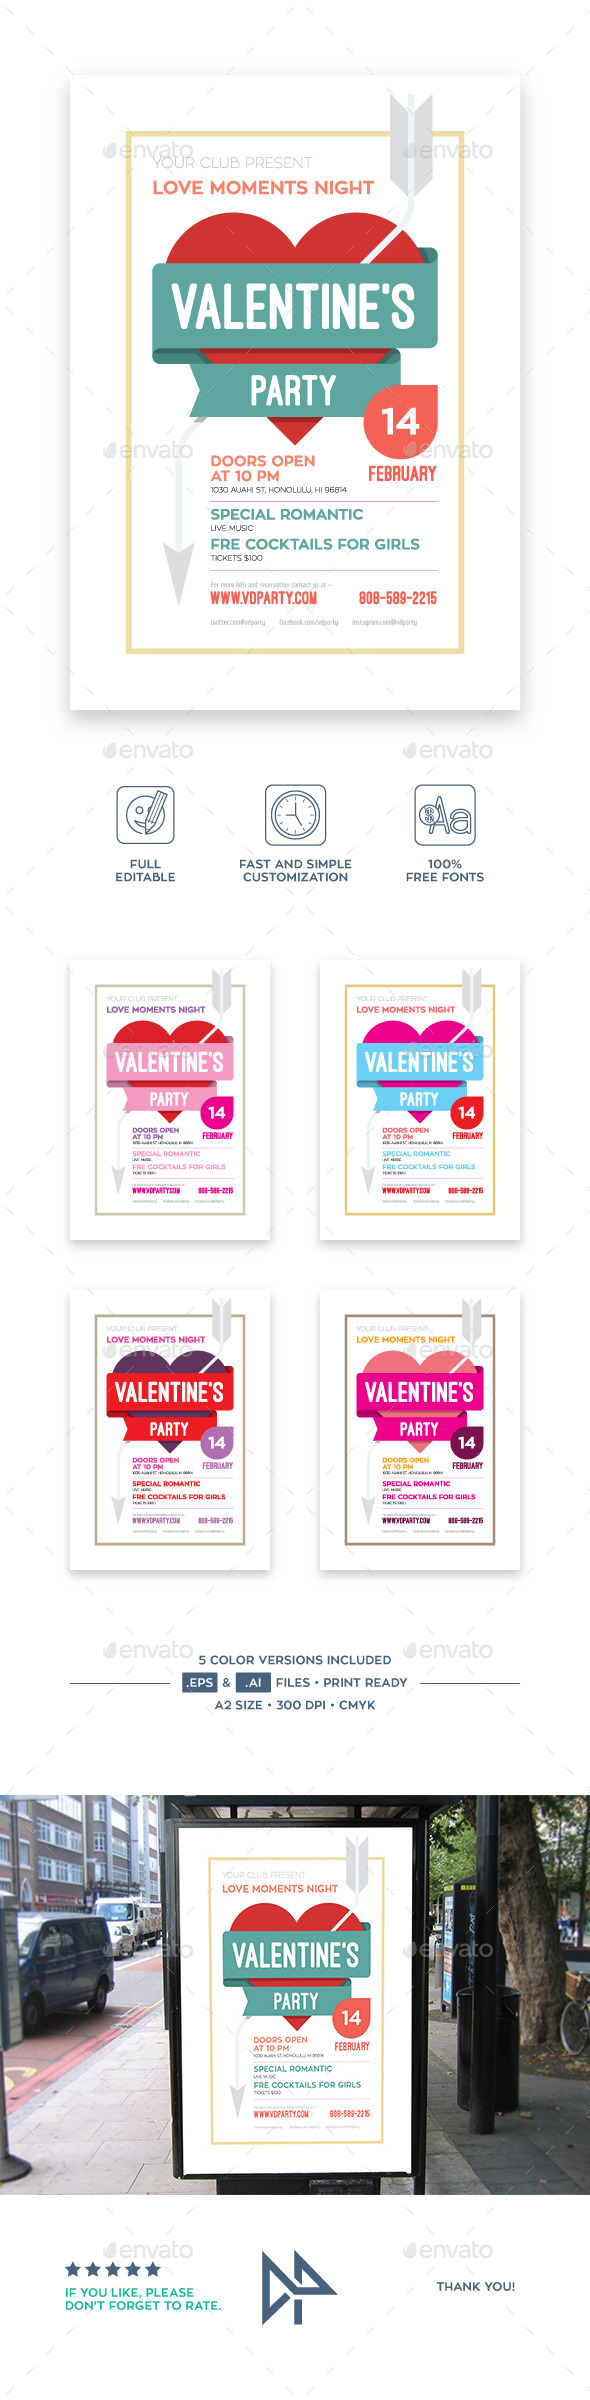 Valentine's Day Poster, vol.2 - Clubs & Parties Events